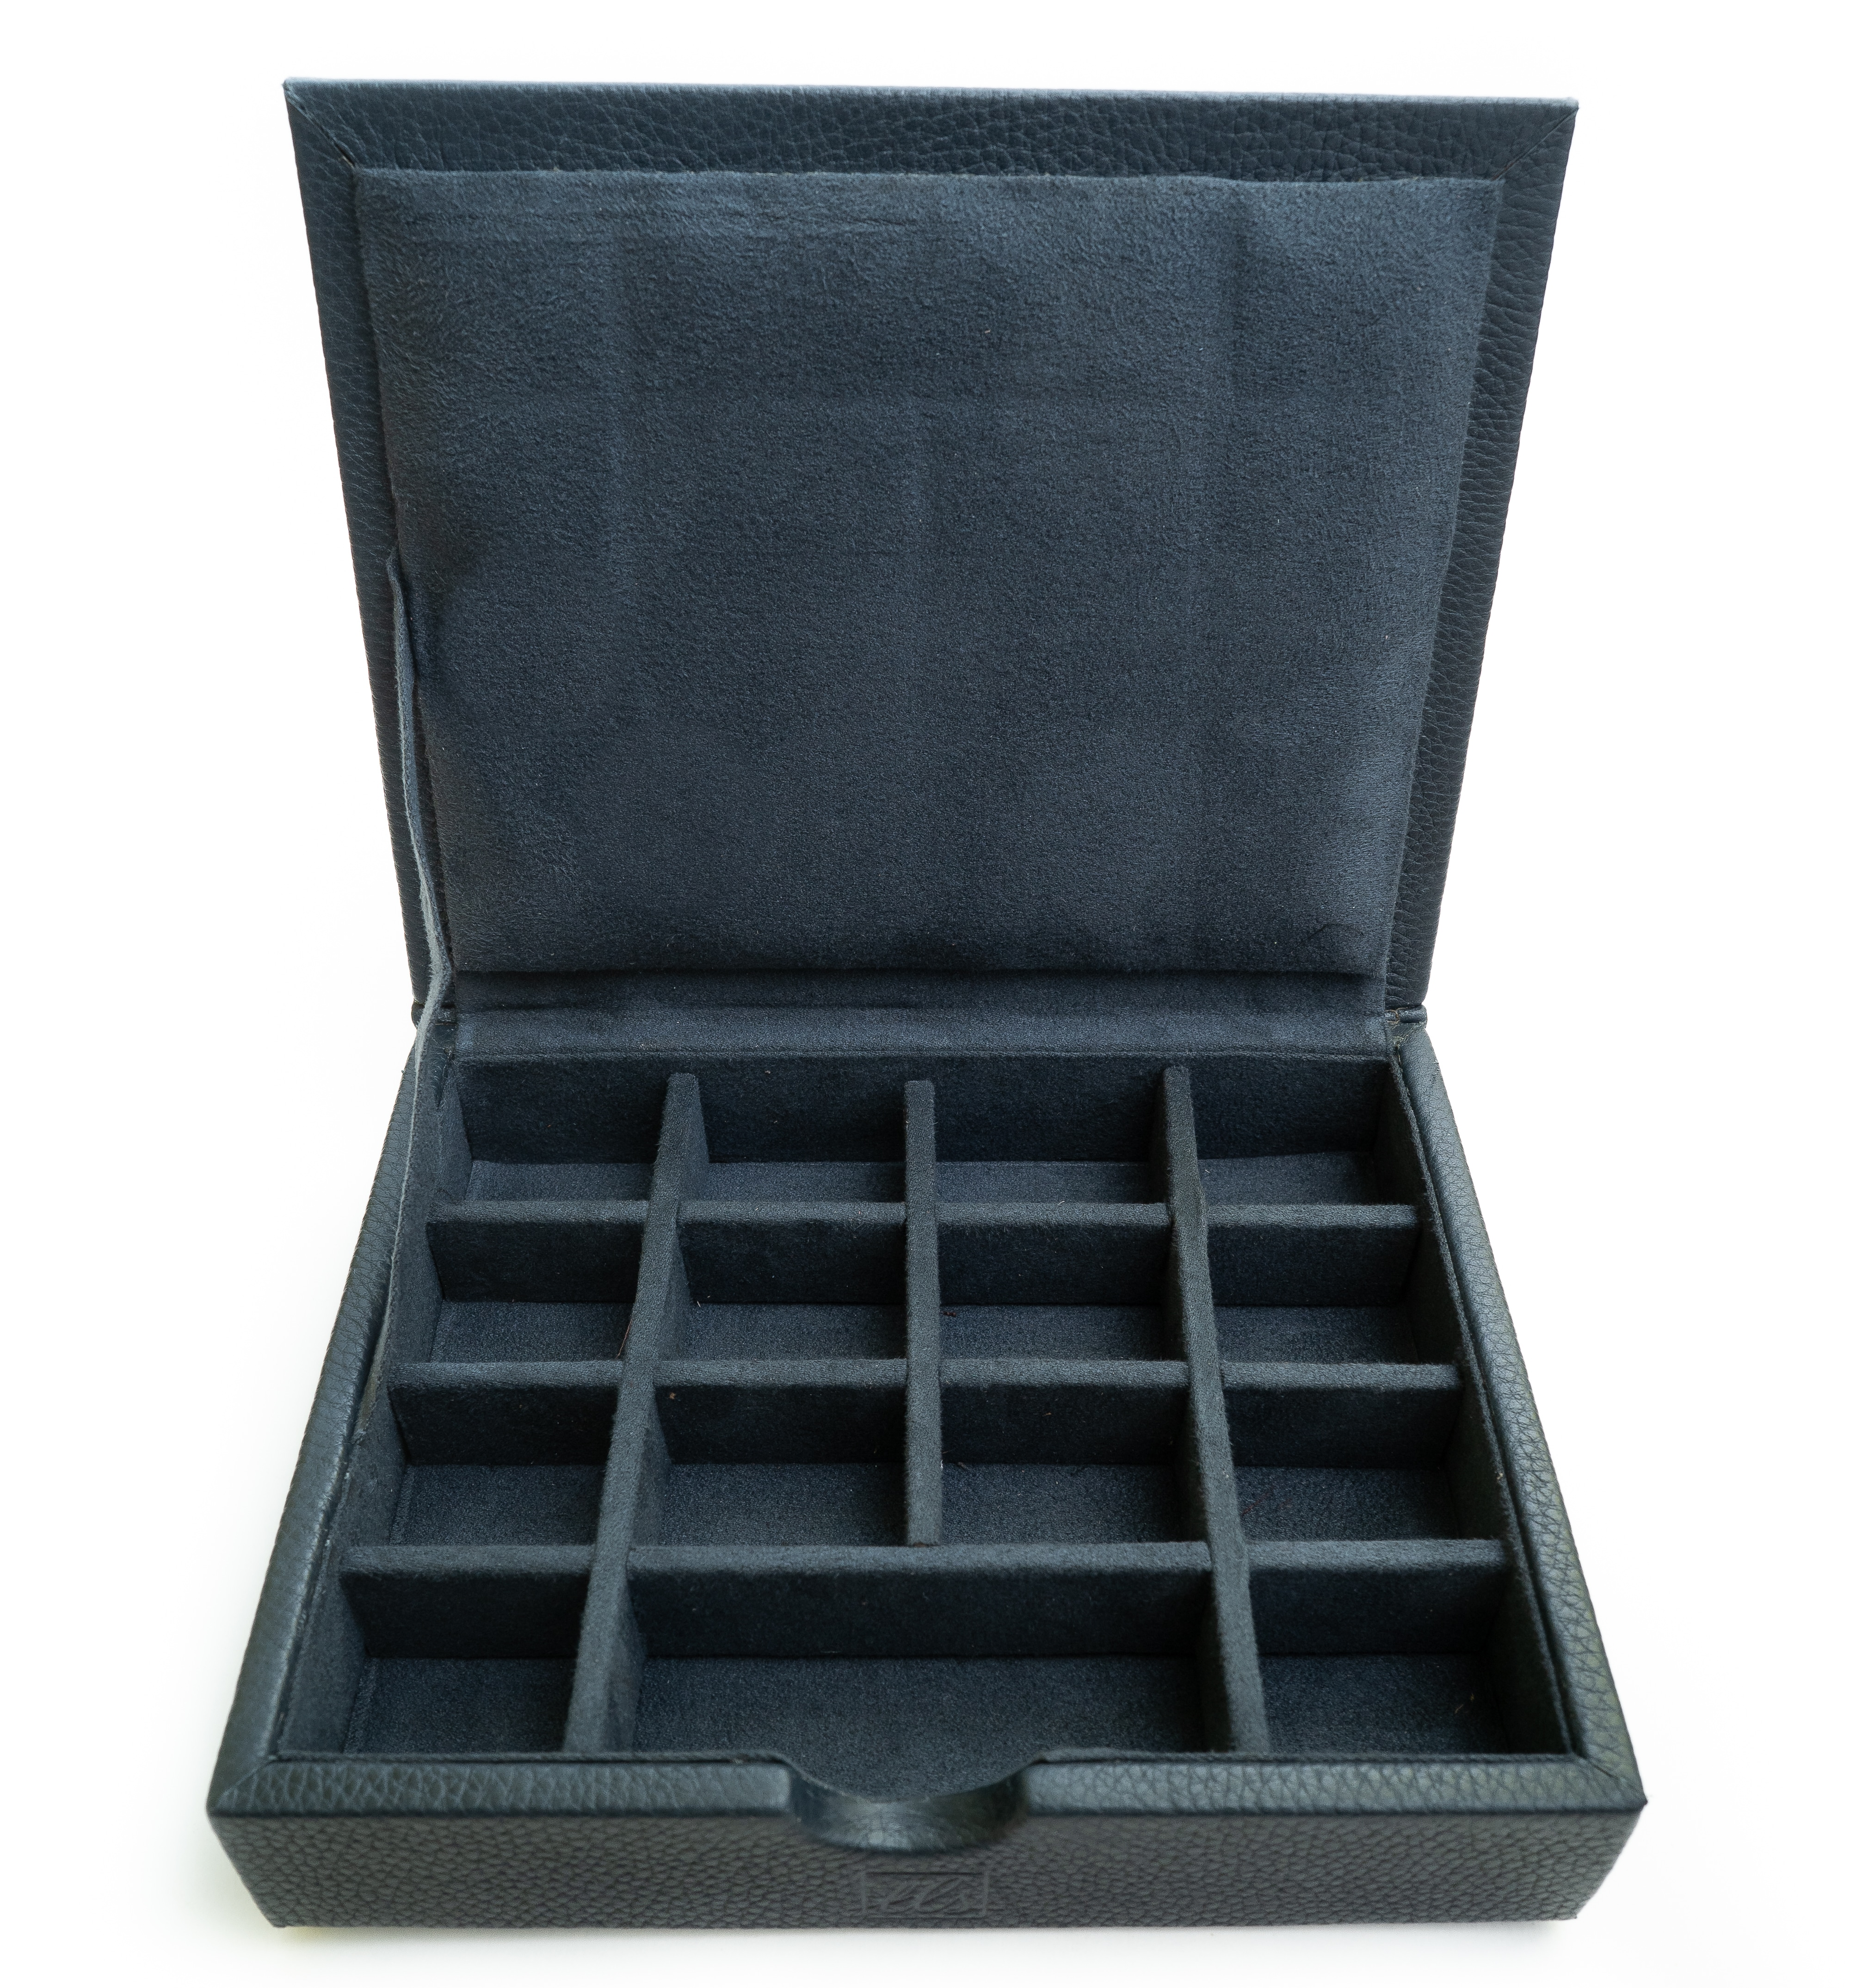 The high-quality cufflink case by The Leather Story